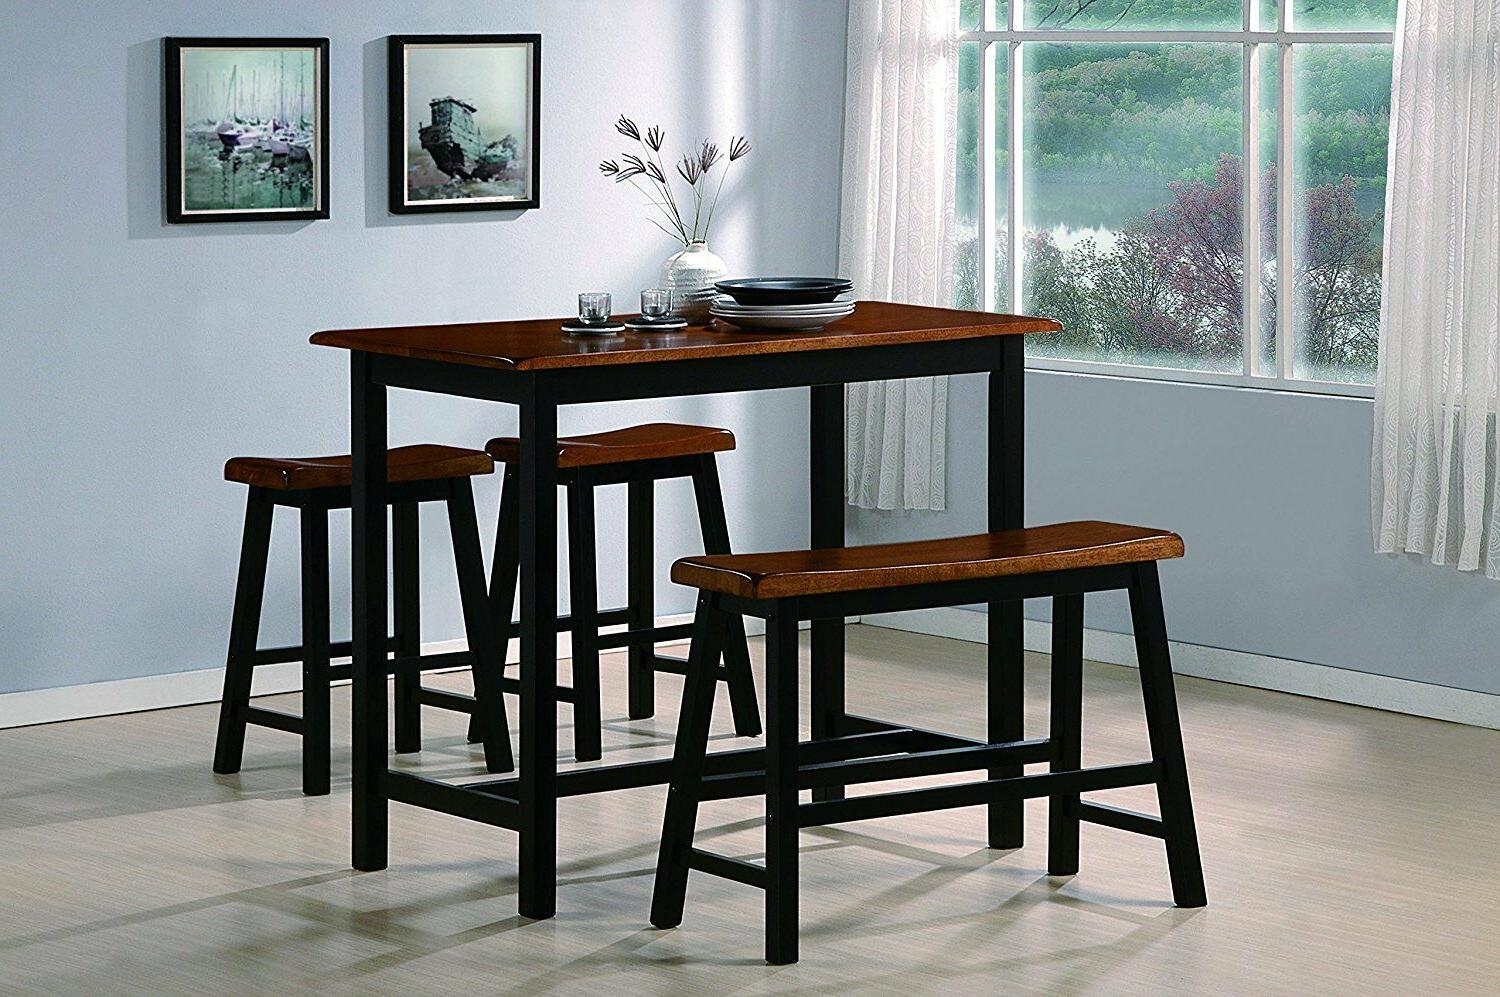 counter height tall table setdining roomkitchen nook